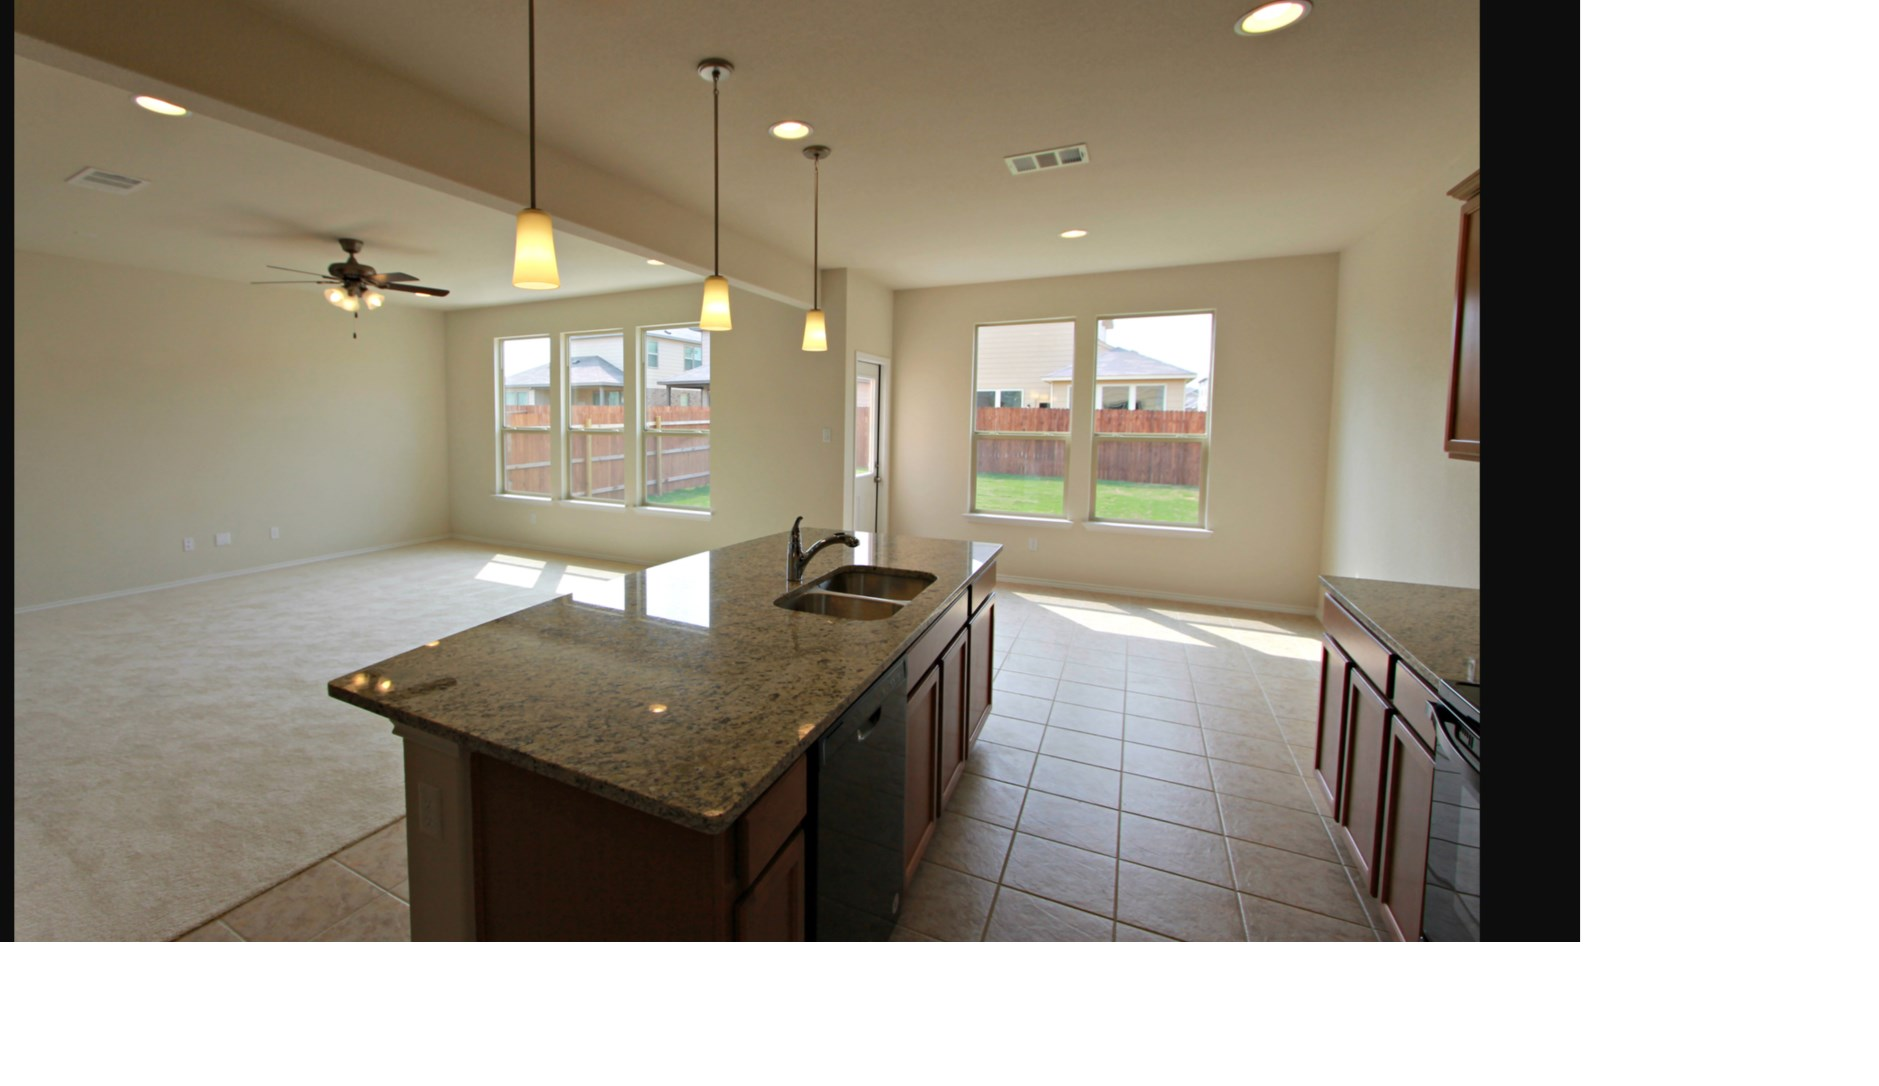 House For Rent In Austin Apartments Flats Commercial Space Individual House For Rentals